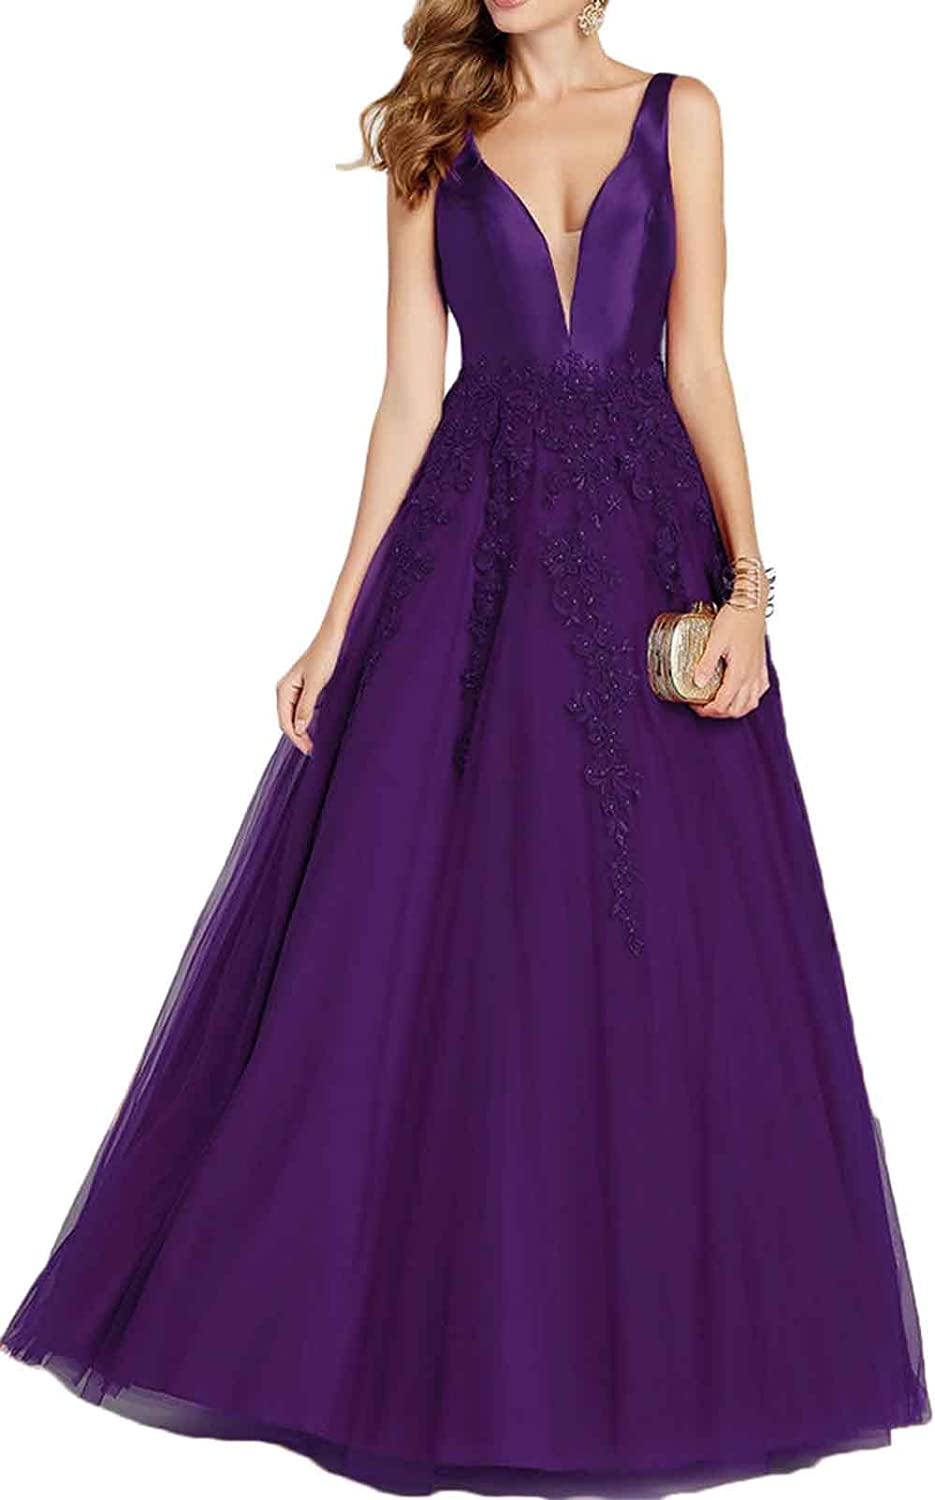 Rmaytiked Womens V Neck Lace Tulle Prom Dresses Long 2019 Satin Formal Evening Ball Gowns